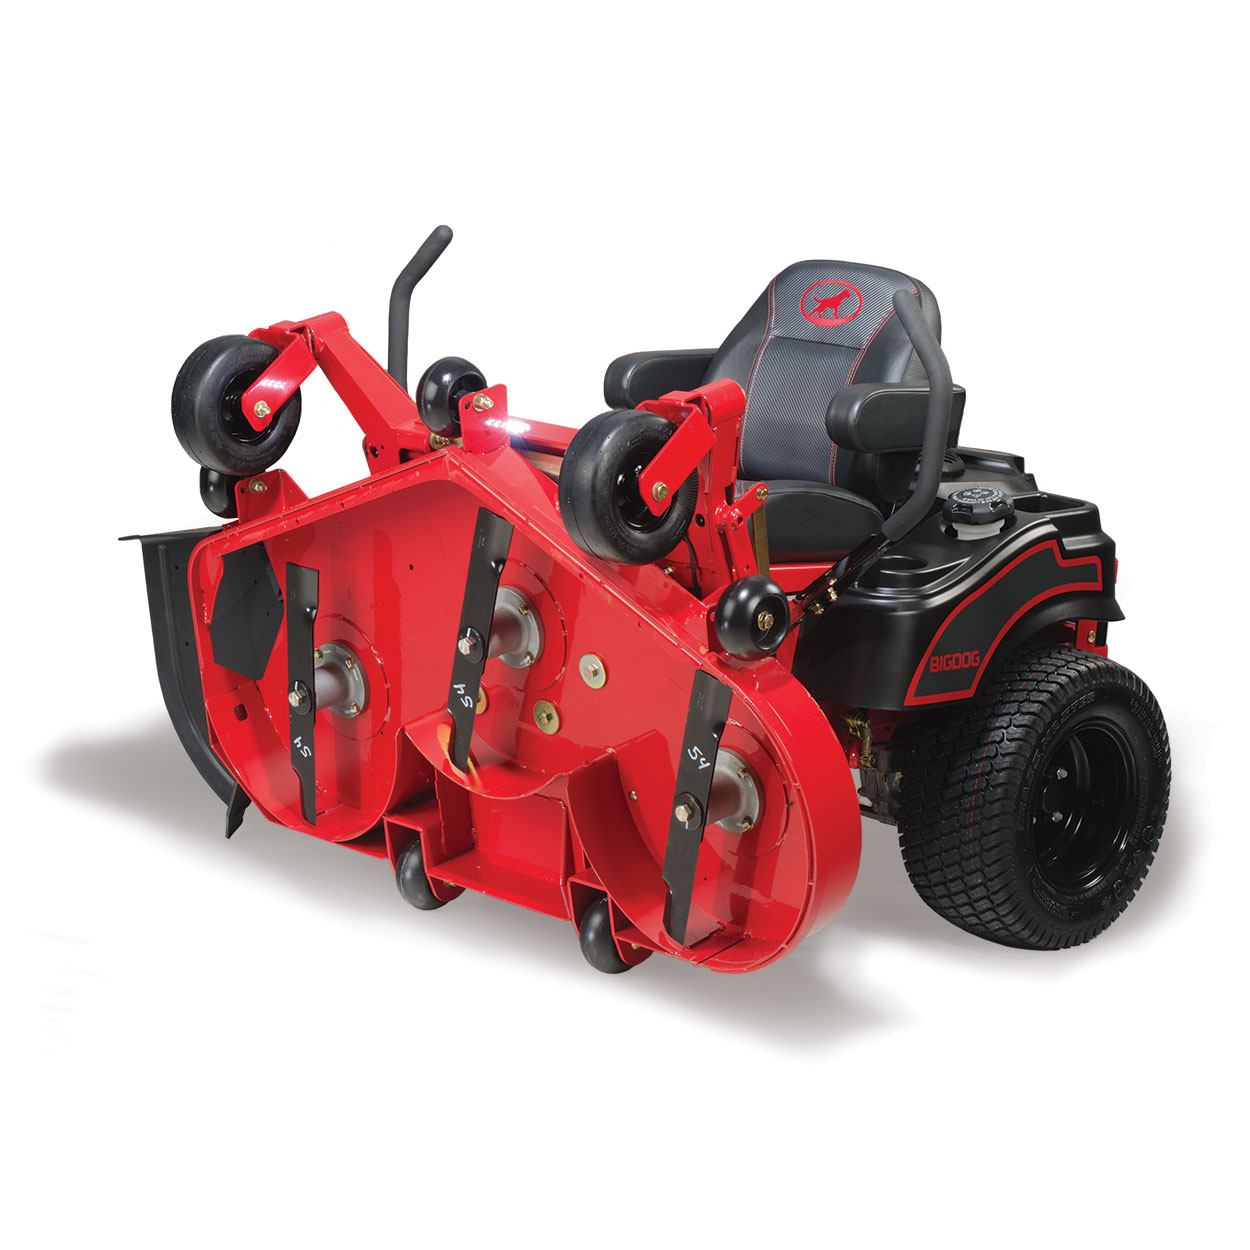 2016 Big Dog Mowers BlackJack 48 in. in Livingston, Texas